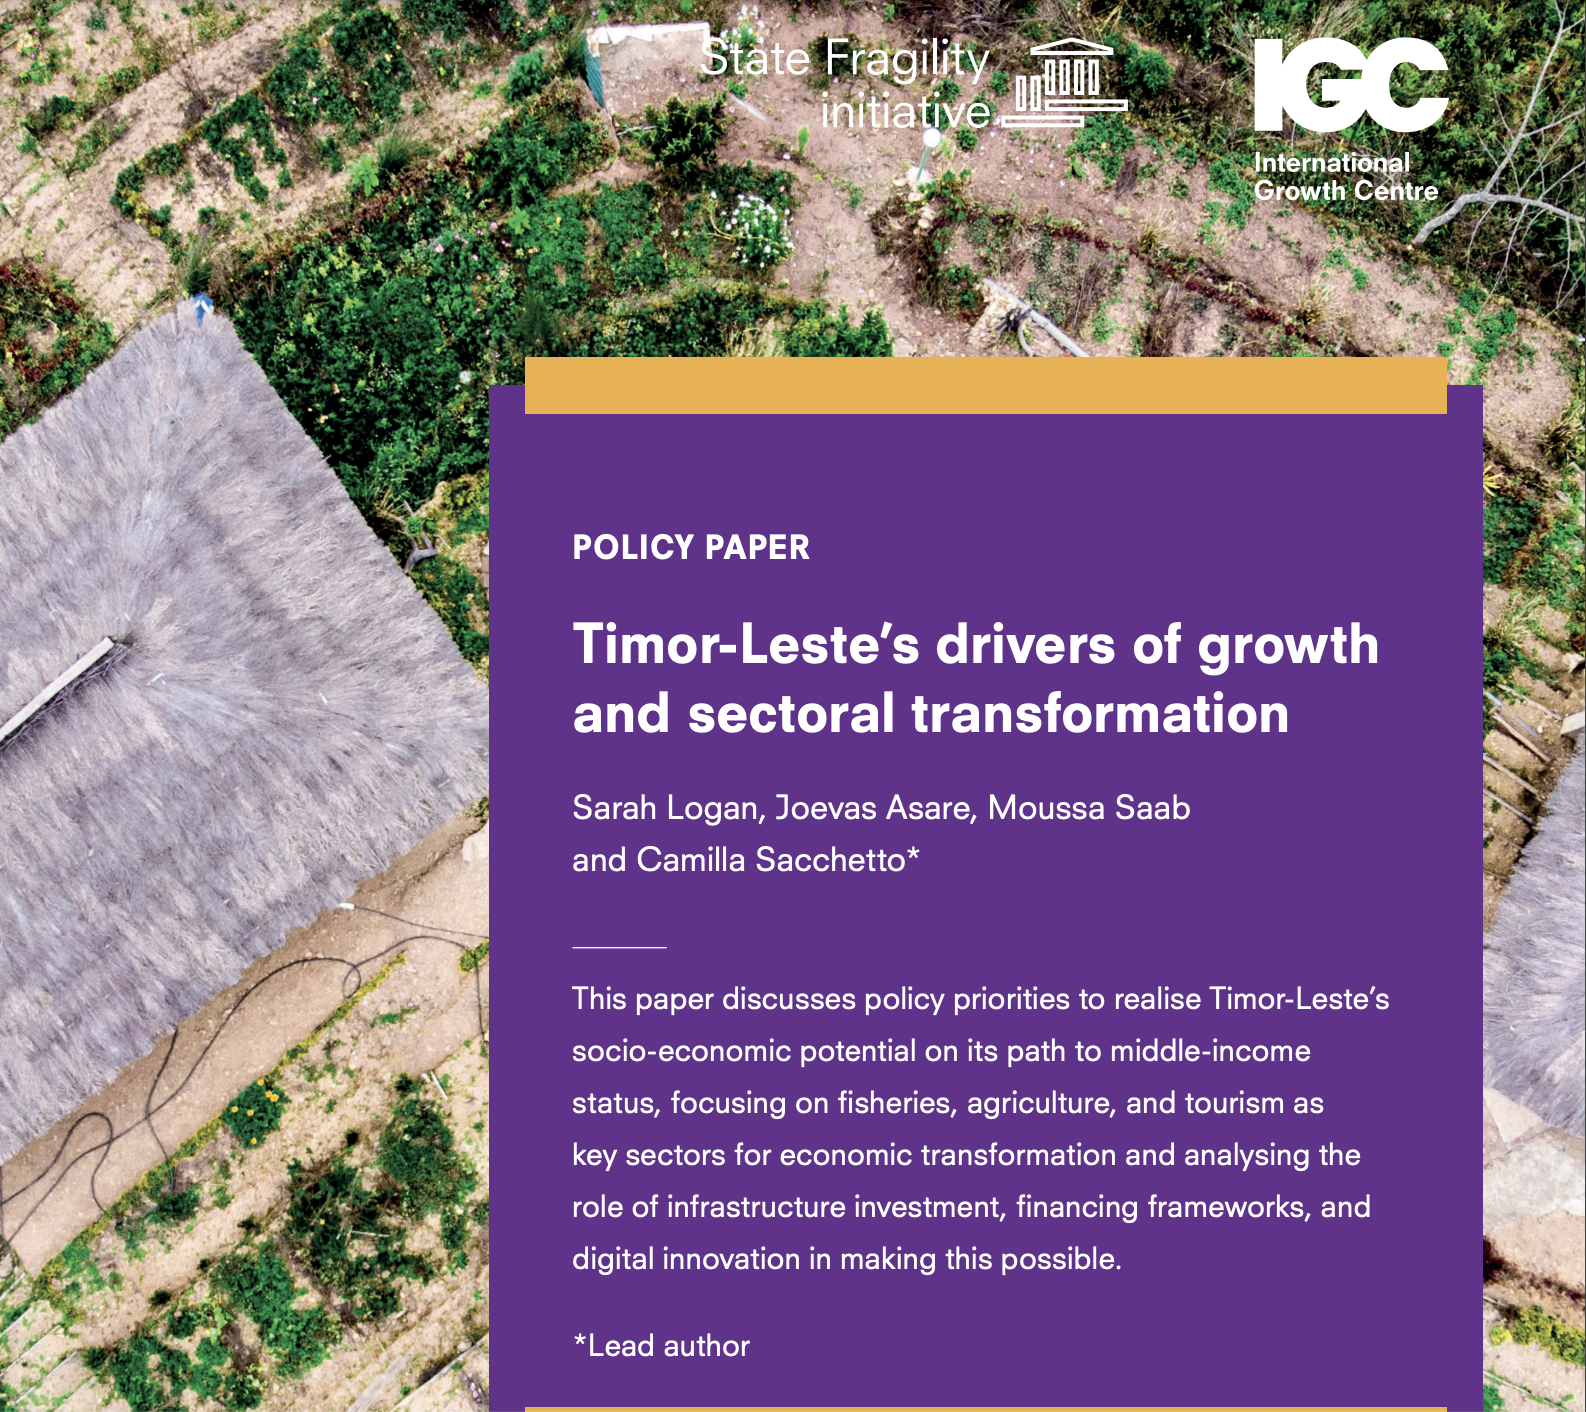 Thispolicy paperdiscusses policy priorities to realise Timor-Leste's socio-economic potential on its path to middle-income status, focusing on fisheries, agriculture, and tourism as key sectors for economic transformation and analysing the role of infrastructure investment, financing frameworks, and digital innovation in making this possible.